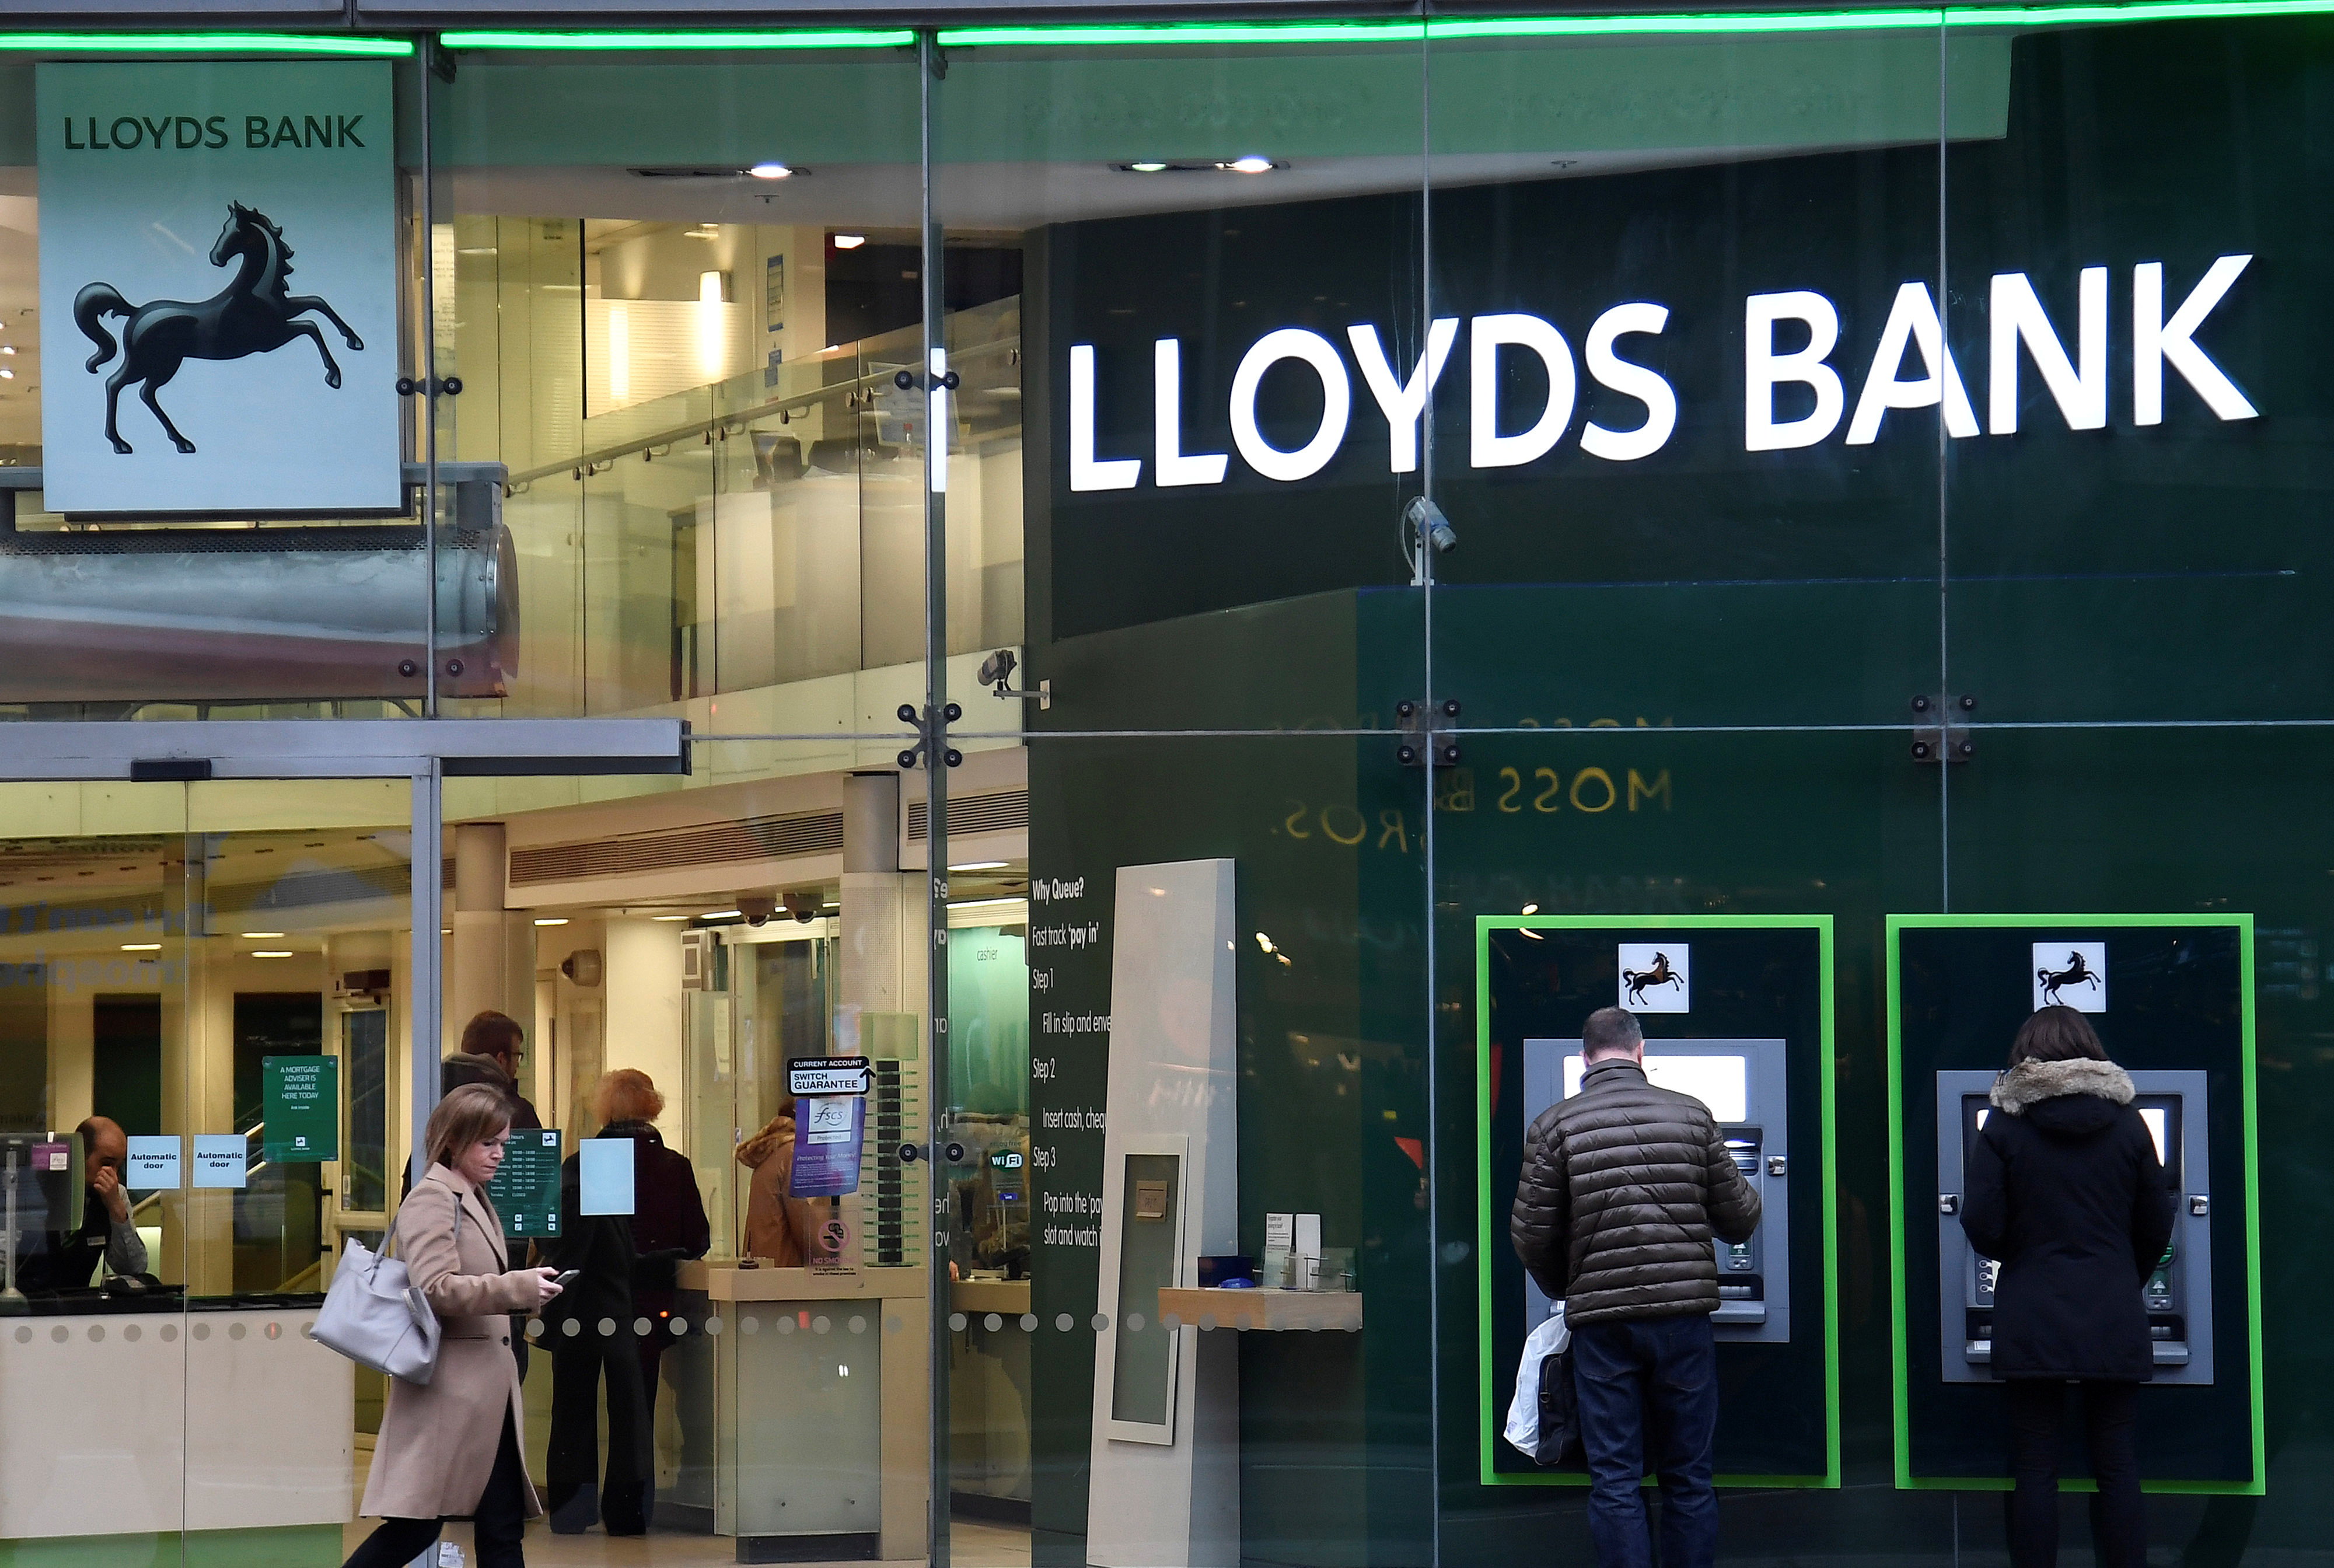 Customers use ATMs at a branch of Lloyds Bank in London, Britain, February 21, 2017. REUTERS/Toby Melville/File Photo